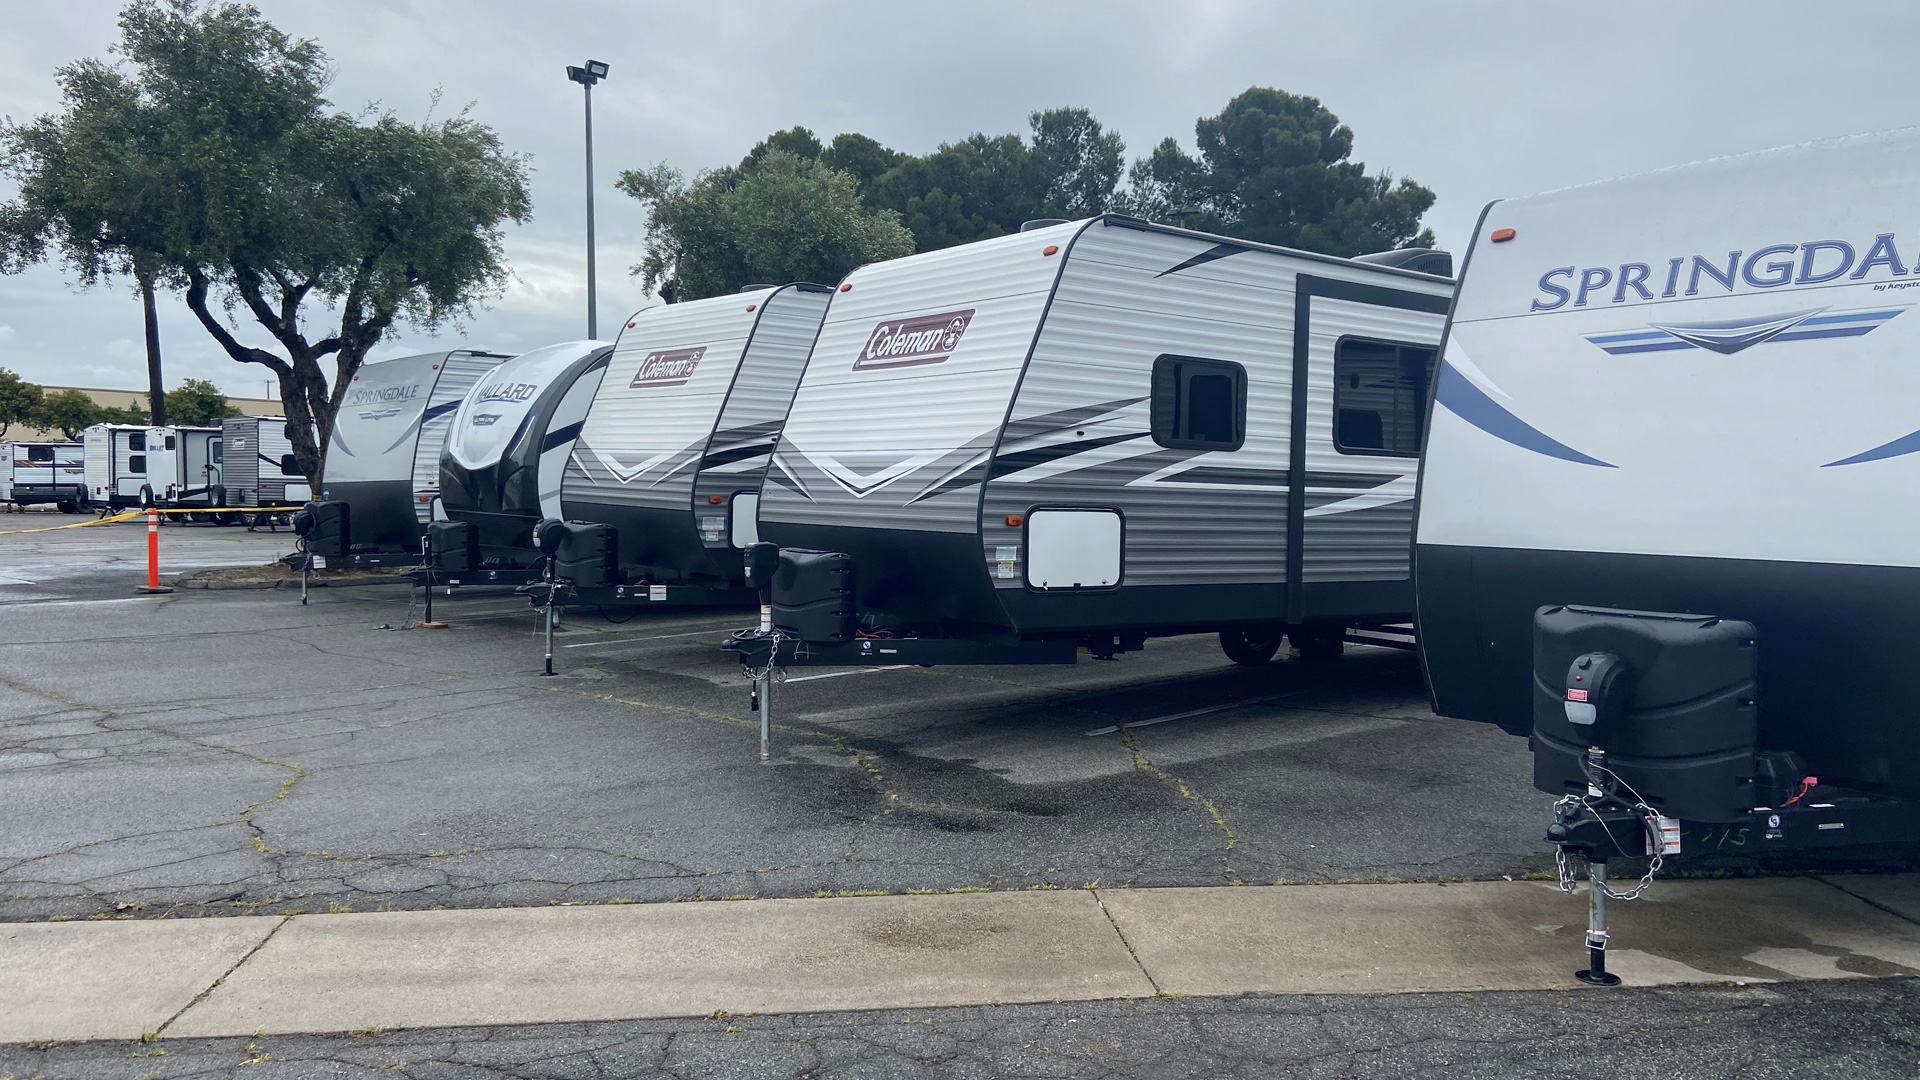 The City of Riverside provided this photo on April 8, 2020, of 15 trailers from the State of California to provide safe isolation housing for individuals experiencing homelessness who have the symptoms of COVID-19.